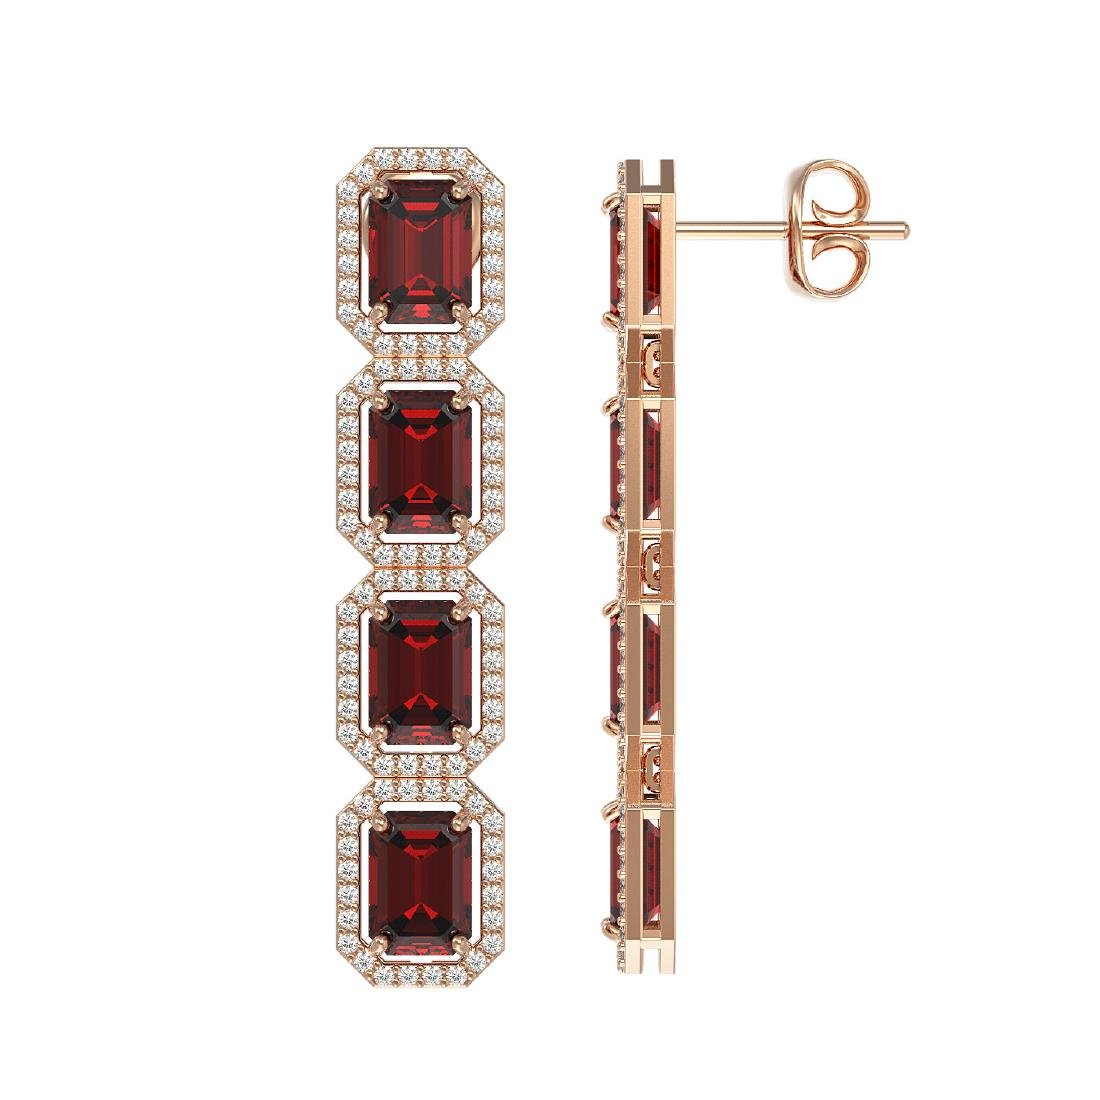 12.73 CTW Garnet & Diamond Halo Earrings 10K Rose Gold - 2